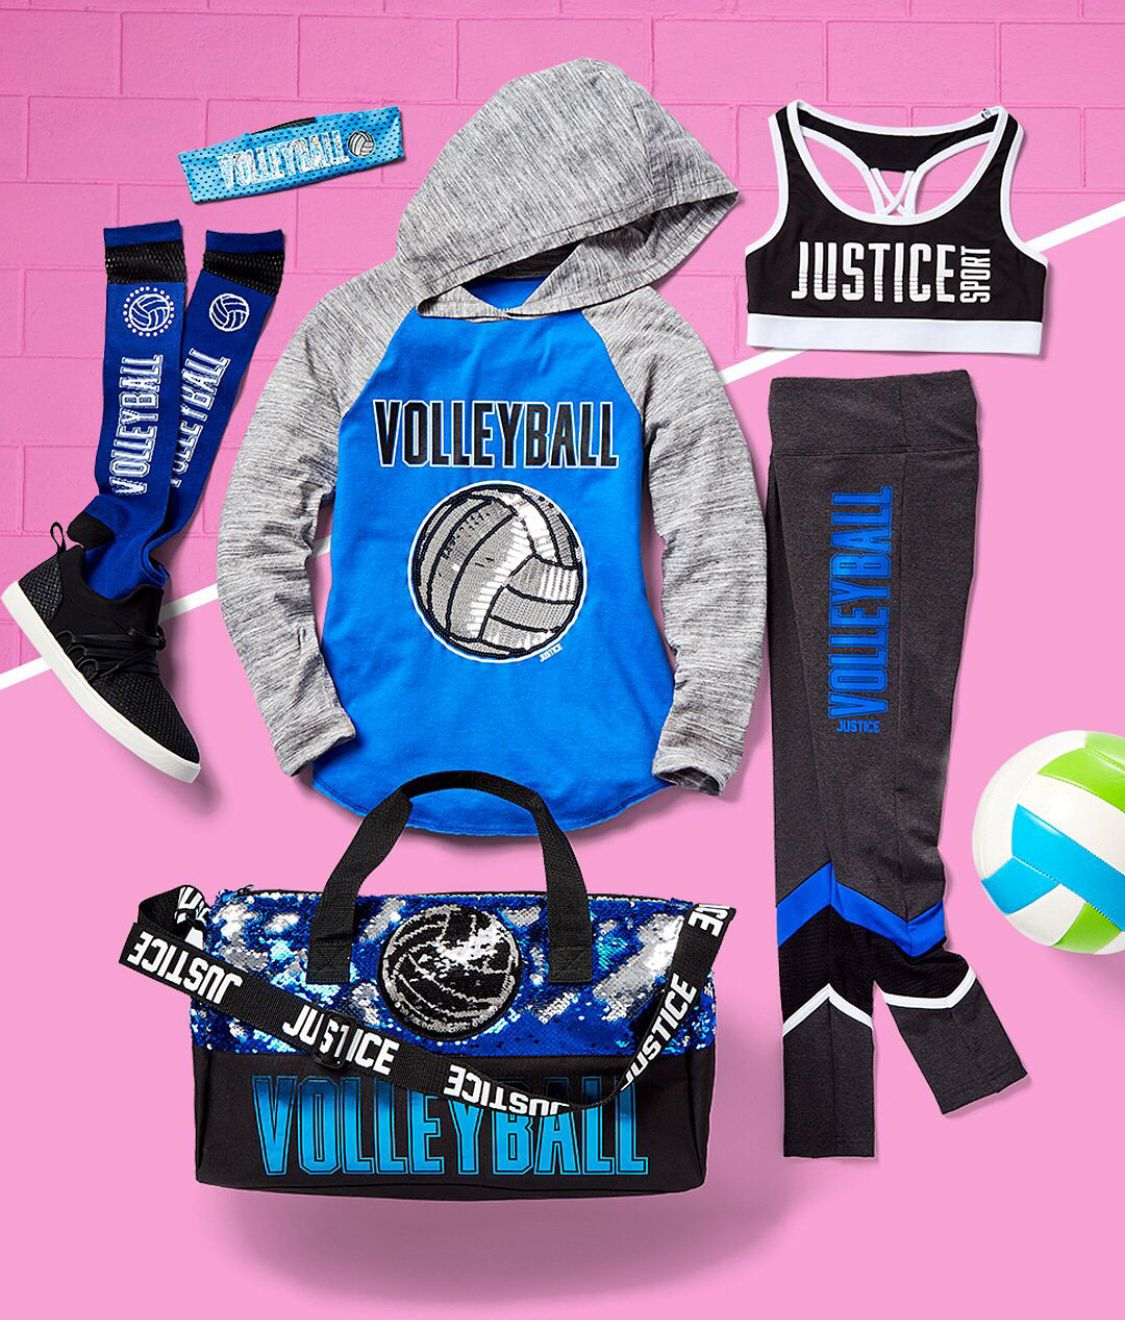 Justice Volleyball School Sports Justice Clothing Outfits Girls Sports Clothes Justice Clothing